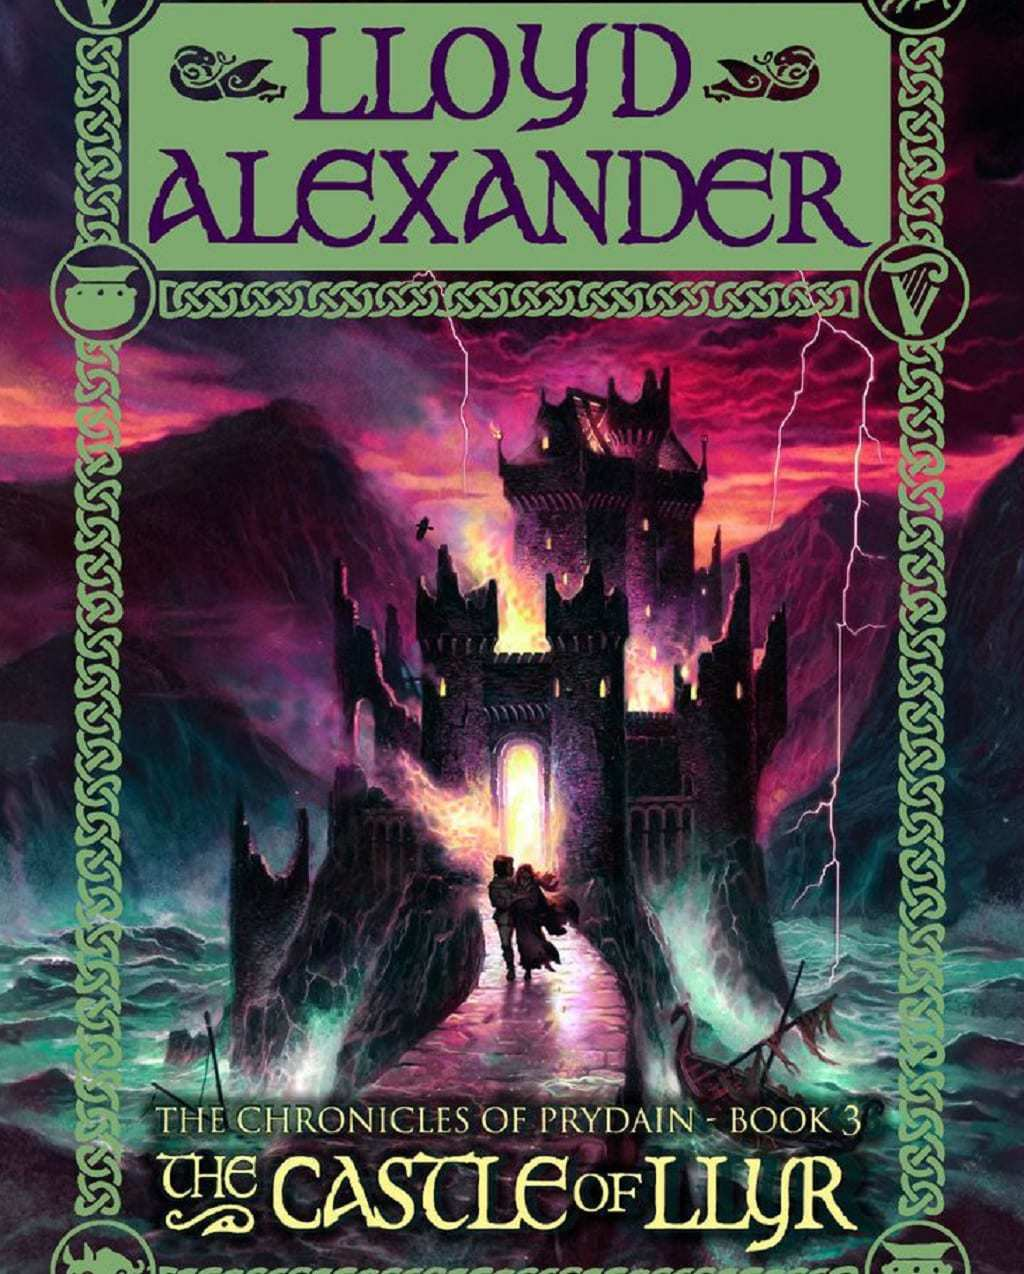 The Castle of Llyr Audiobook Free Download